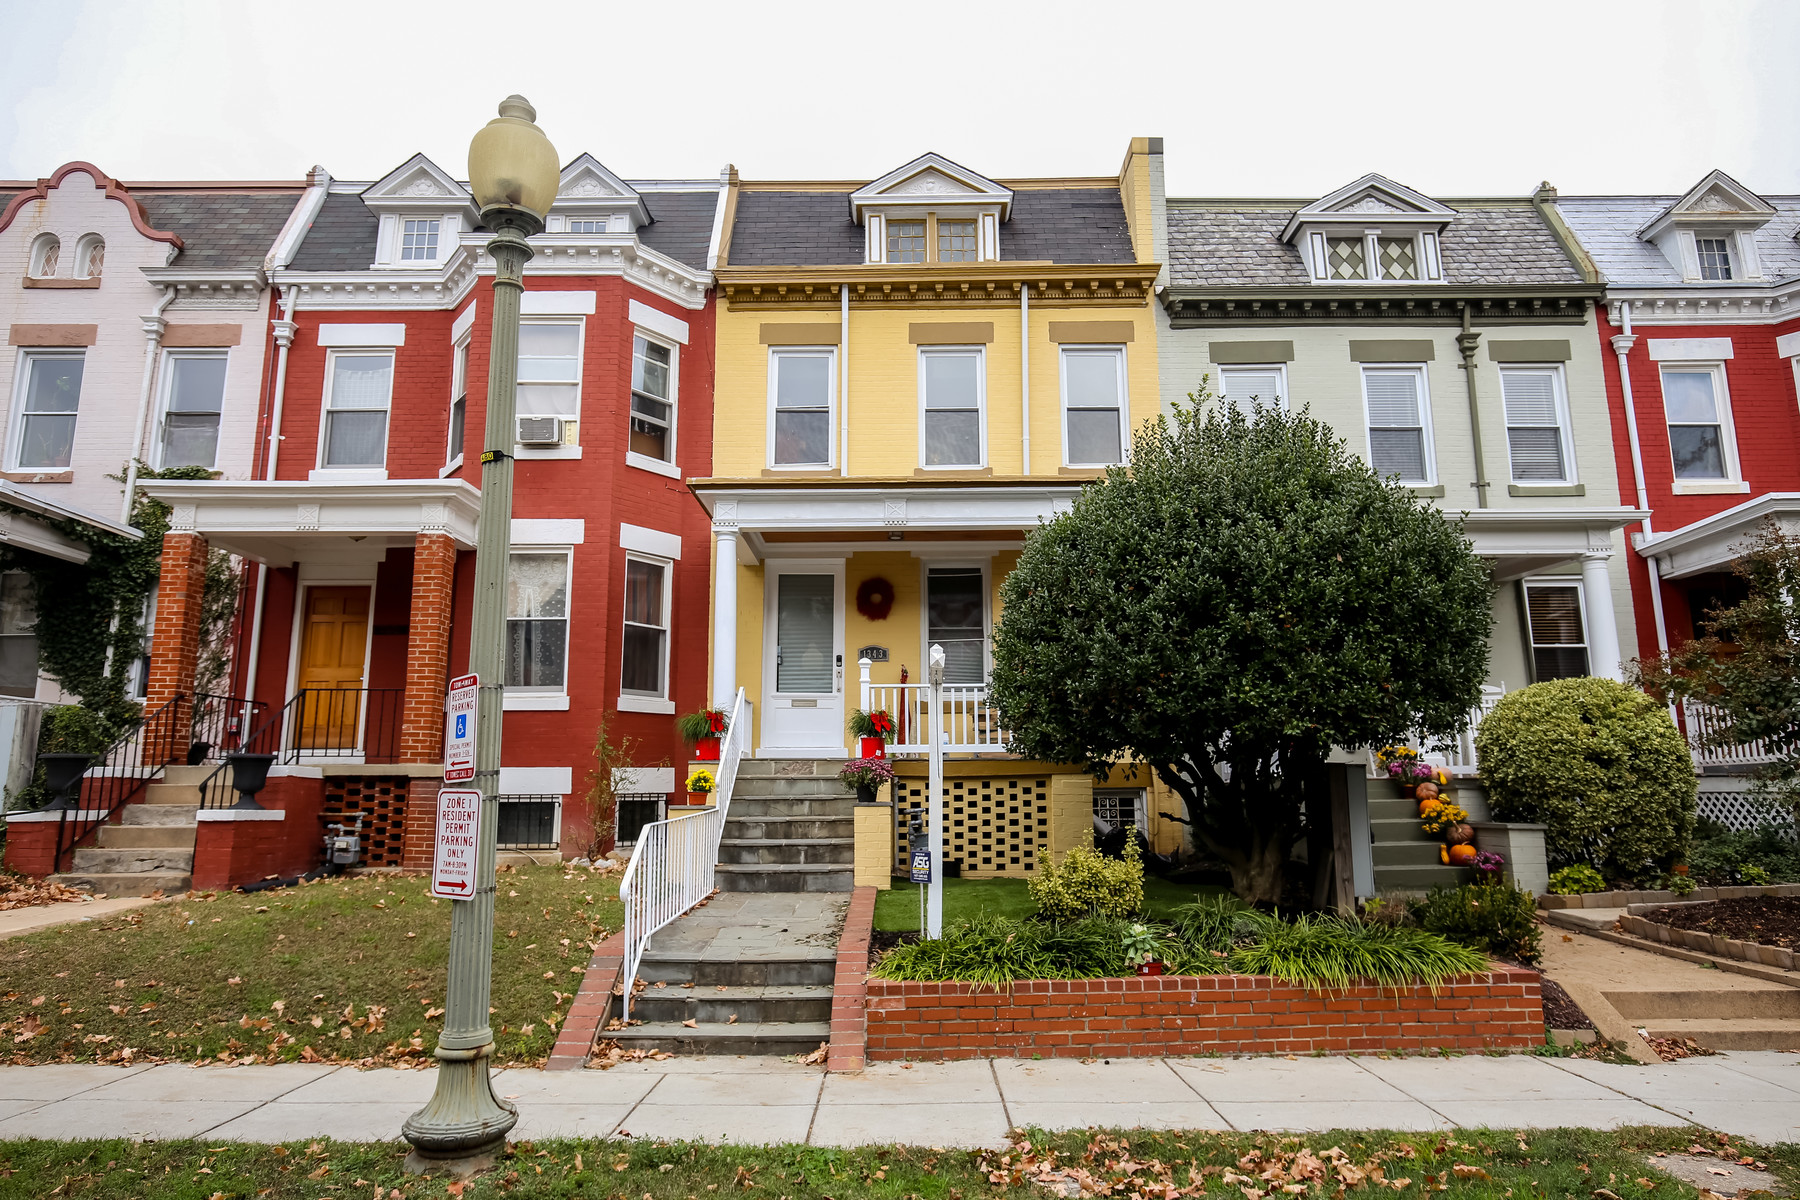 Townhouse for Sale at 1343 Perry Place Nw NW, Washington 1343 NW Perry Place Nw Columbia Heights, Washington, District Of Columbia, 20010 United States